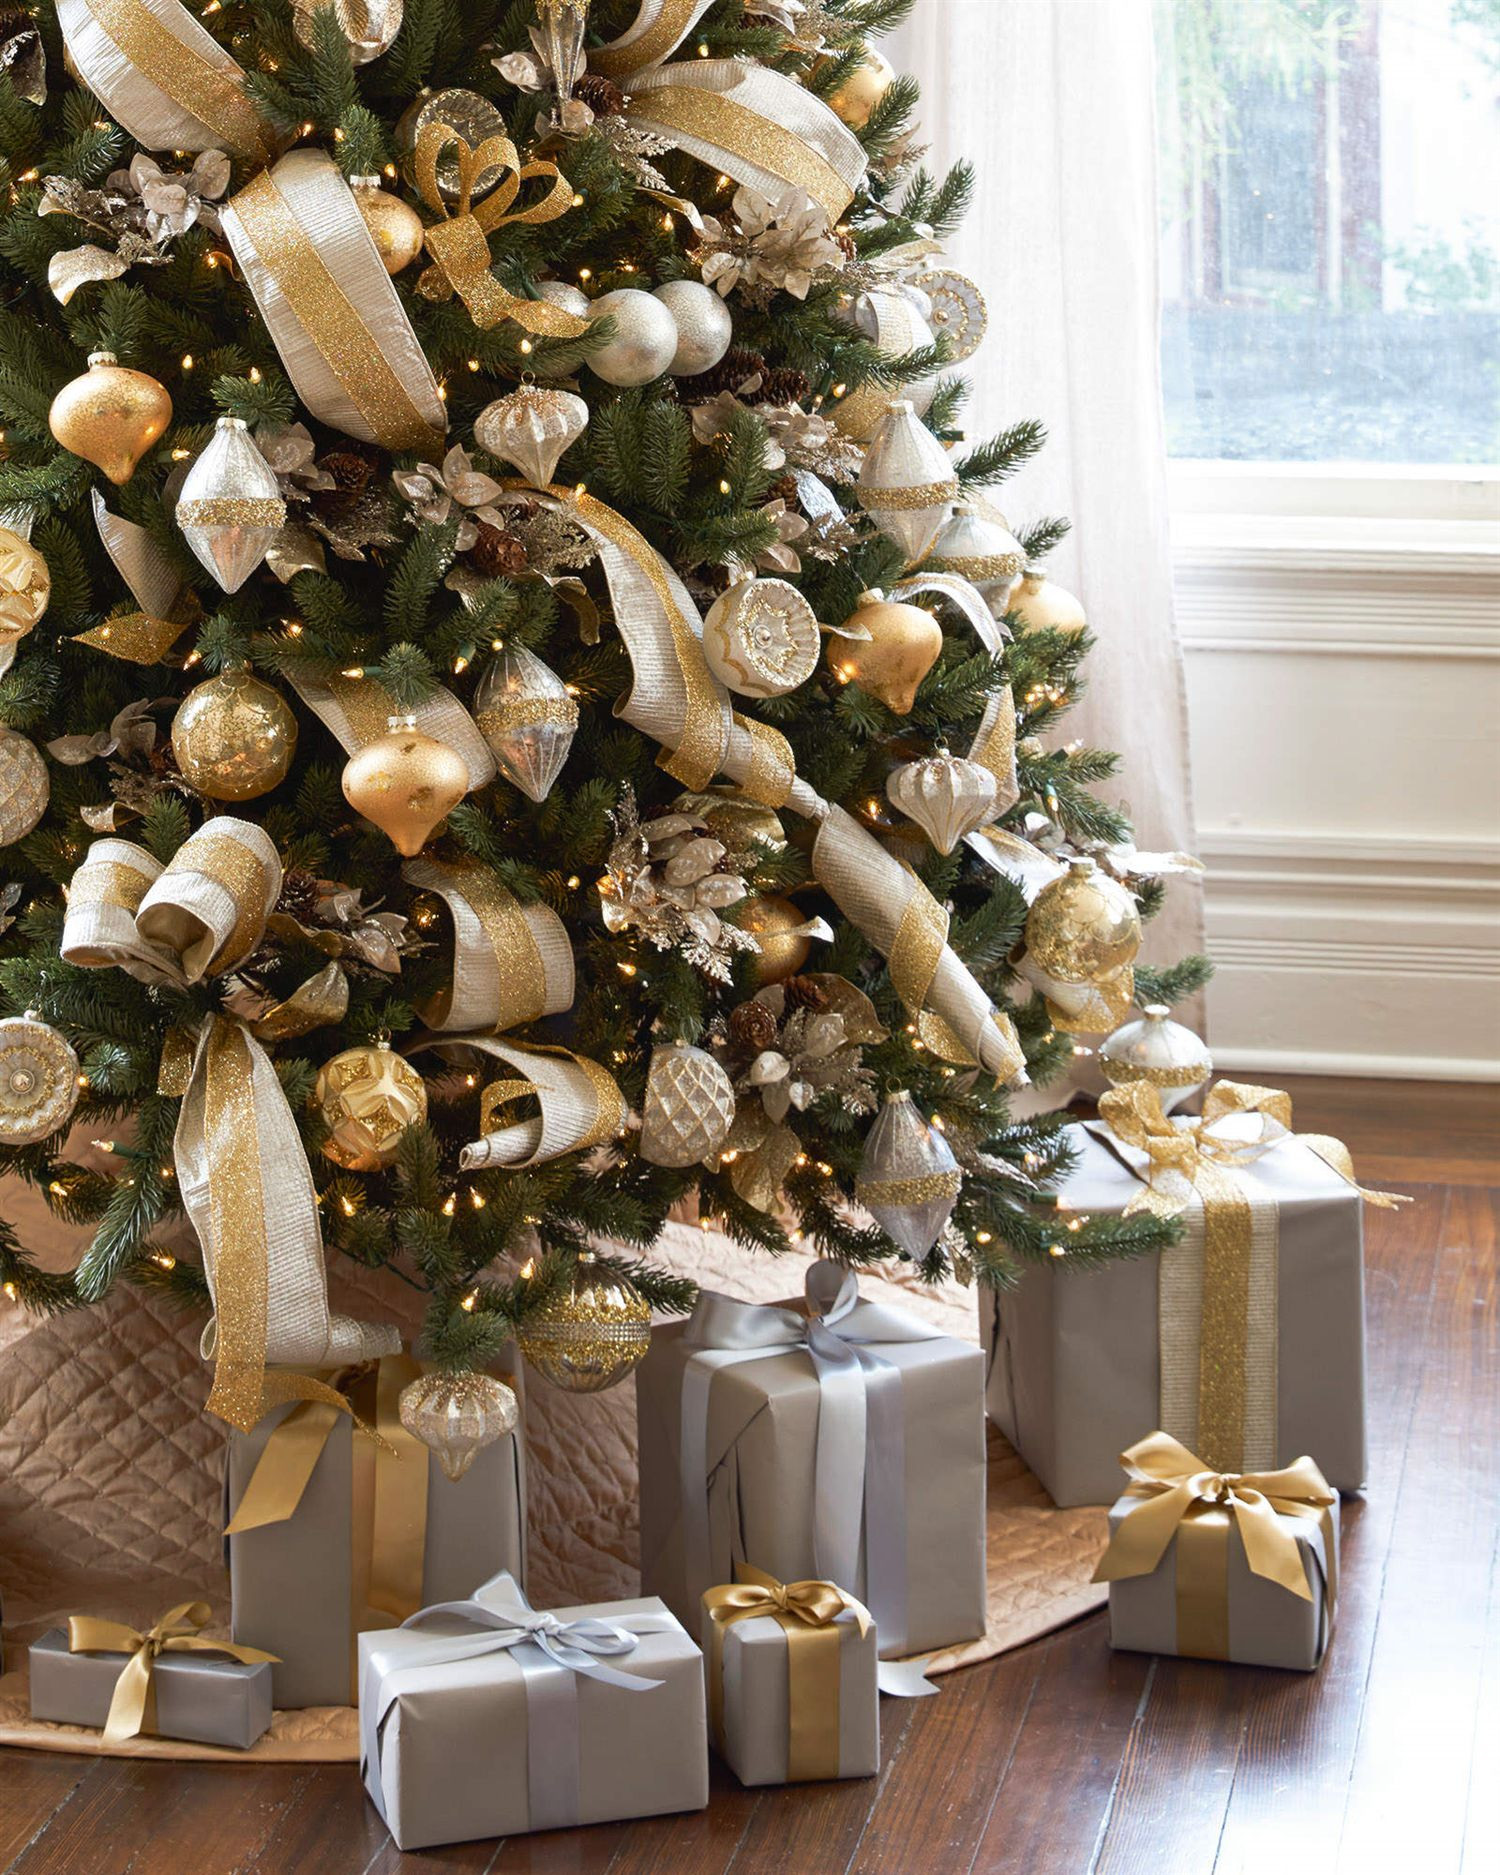 christmas tree shop vases of the latest christmas decorating ideas and color schemes pertaining to orn 1541010 au 6 5b5f28dc46e0fb0025074438